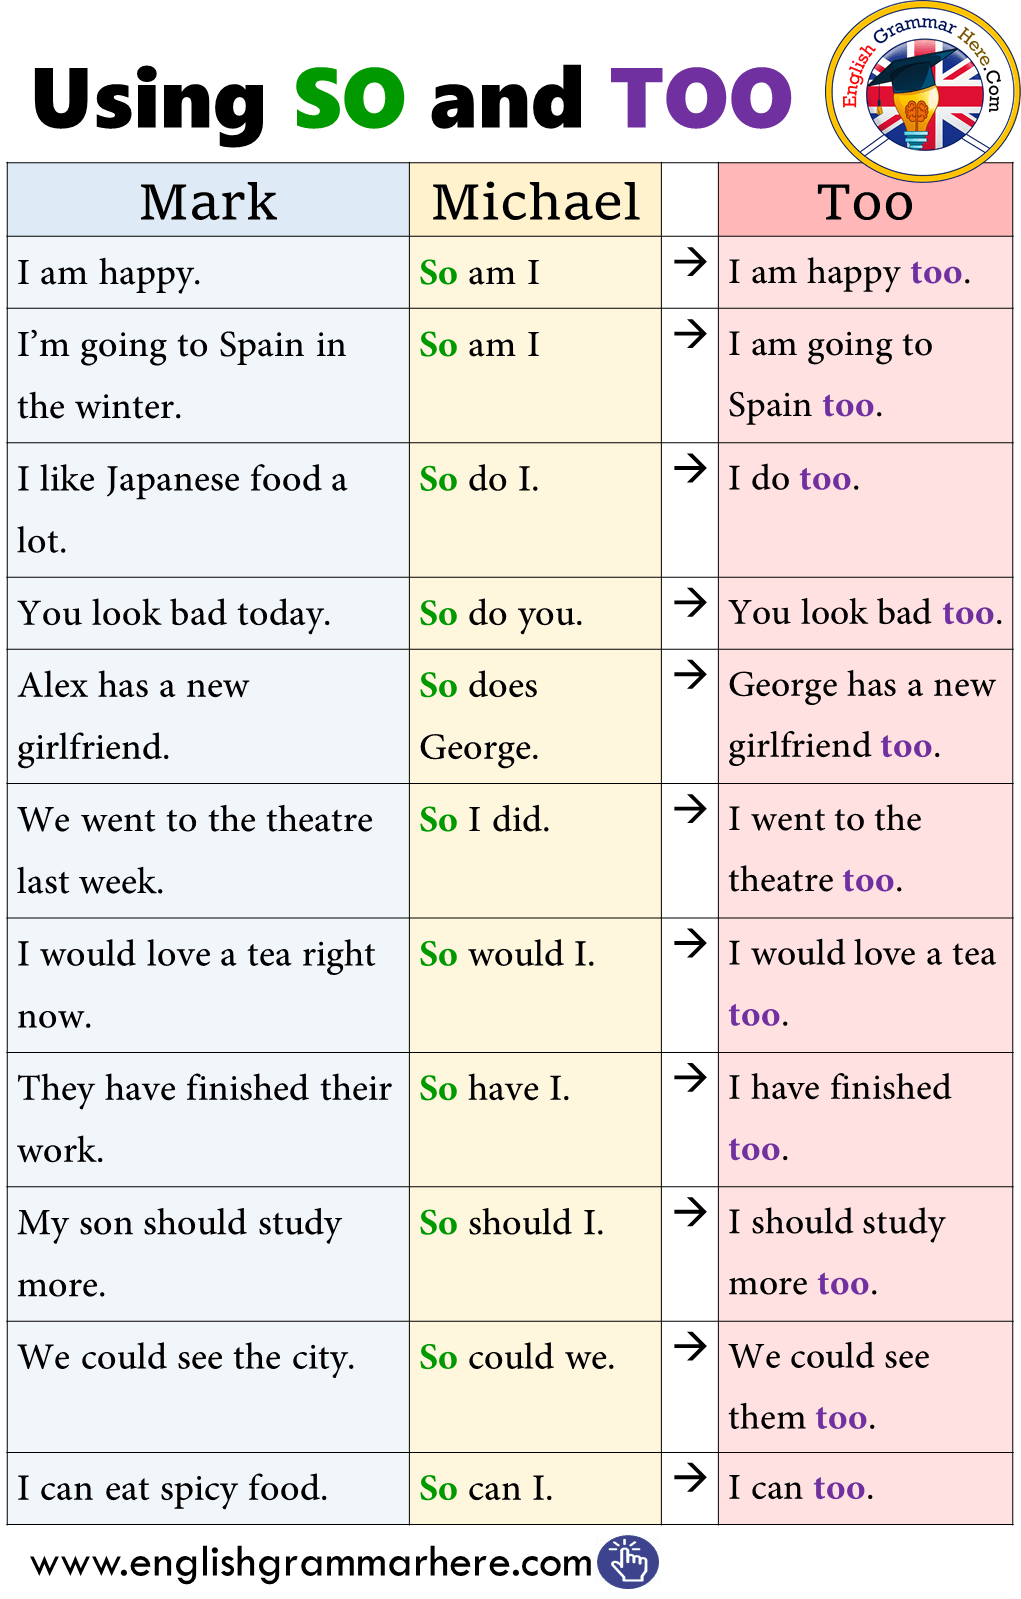 Using SO and TOO in English